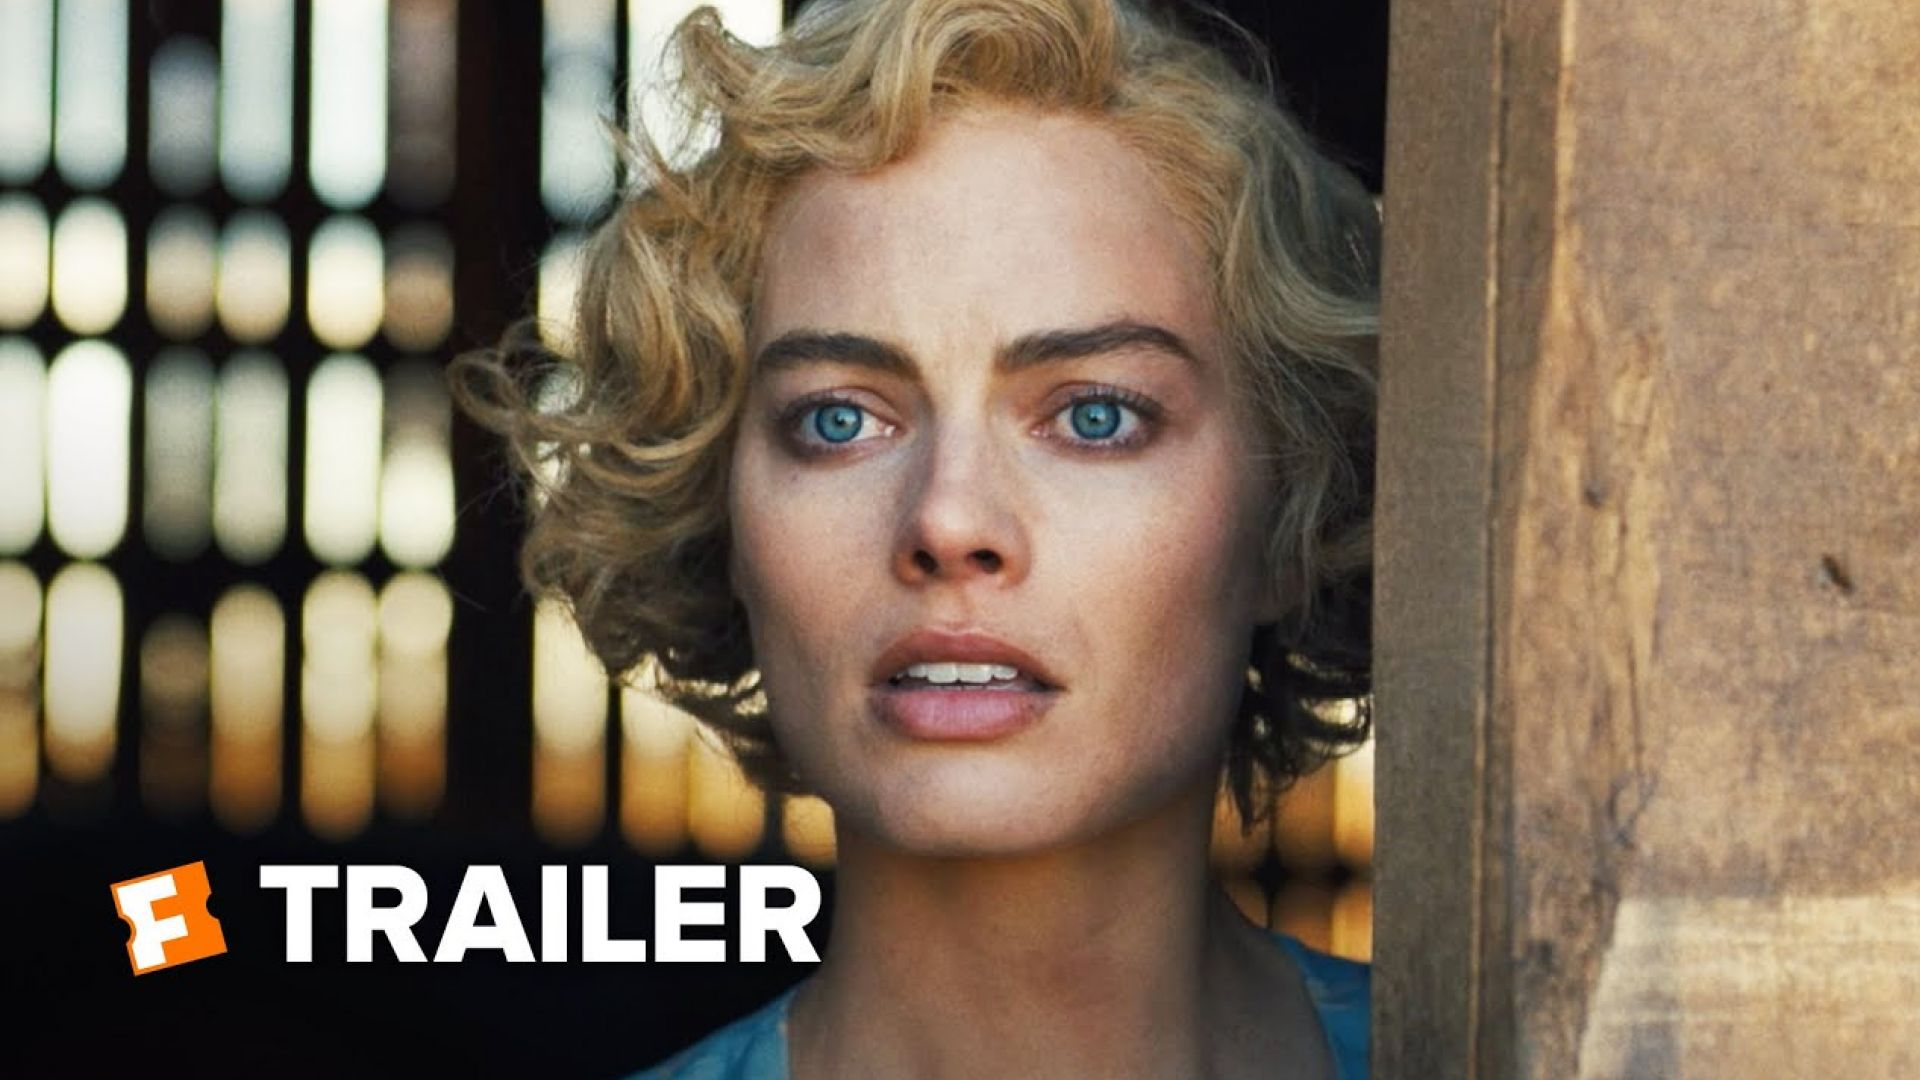 First trailer for 'Dreamland' with Margot Robbie